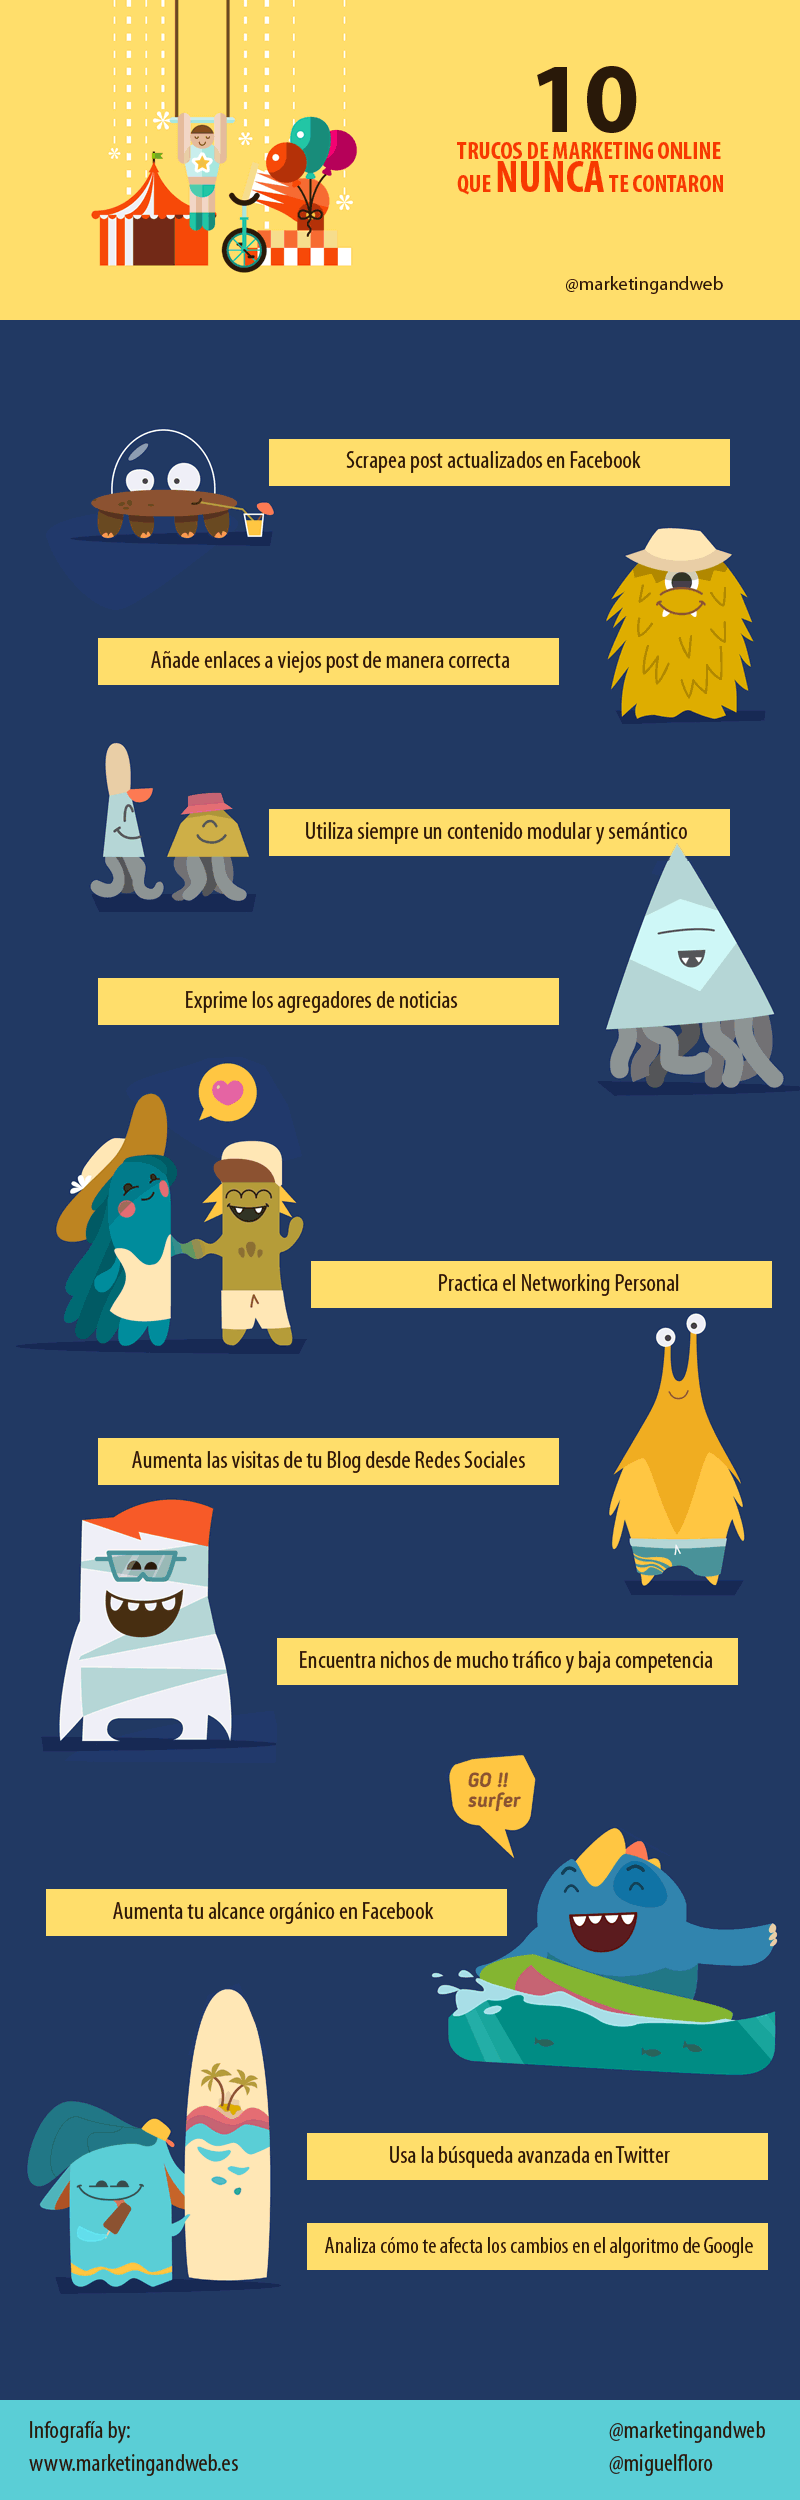 10 trucos de Marketing Online que nunca te contaron #infografia #marketing